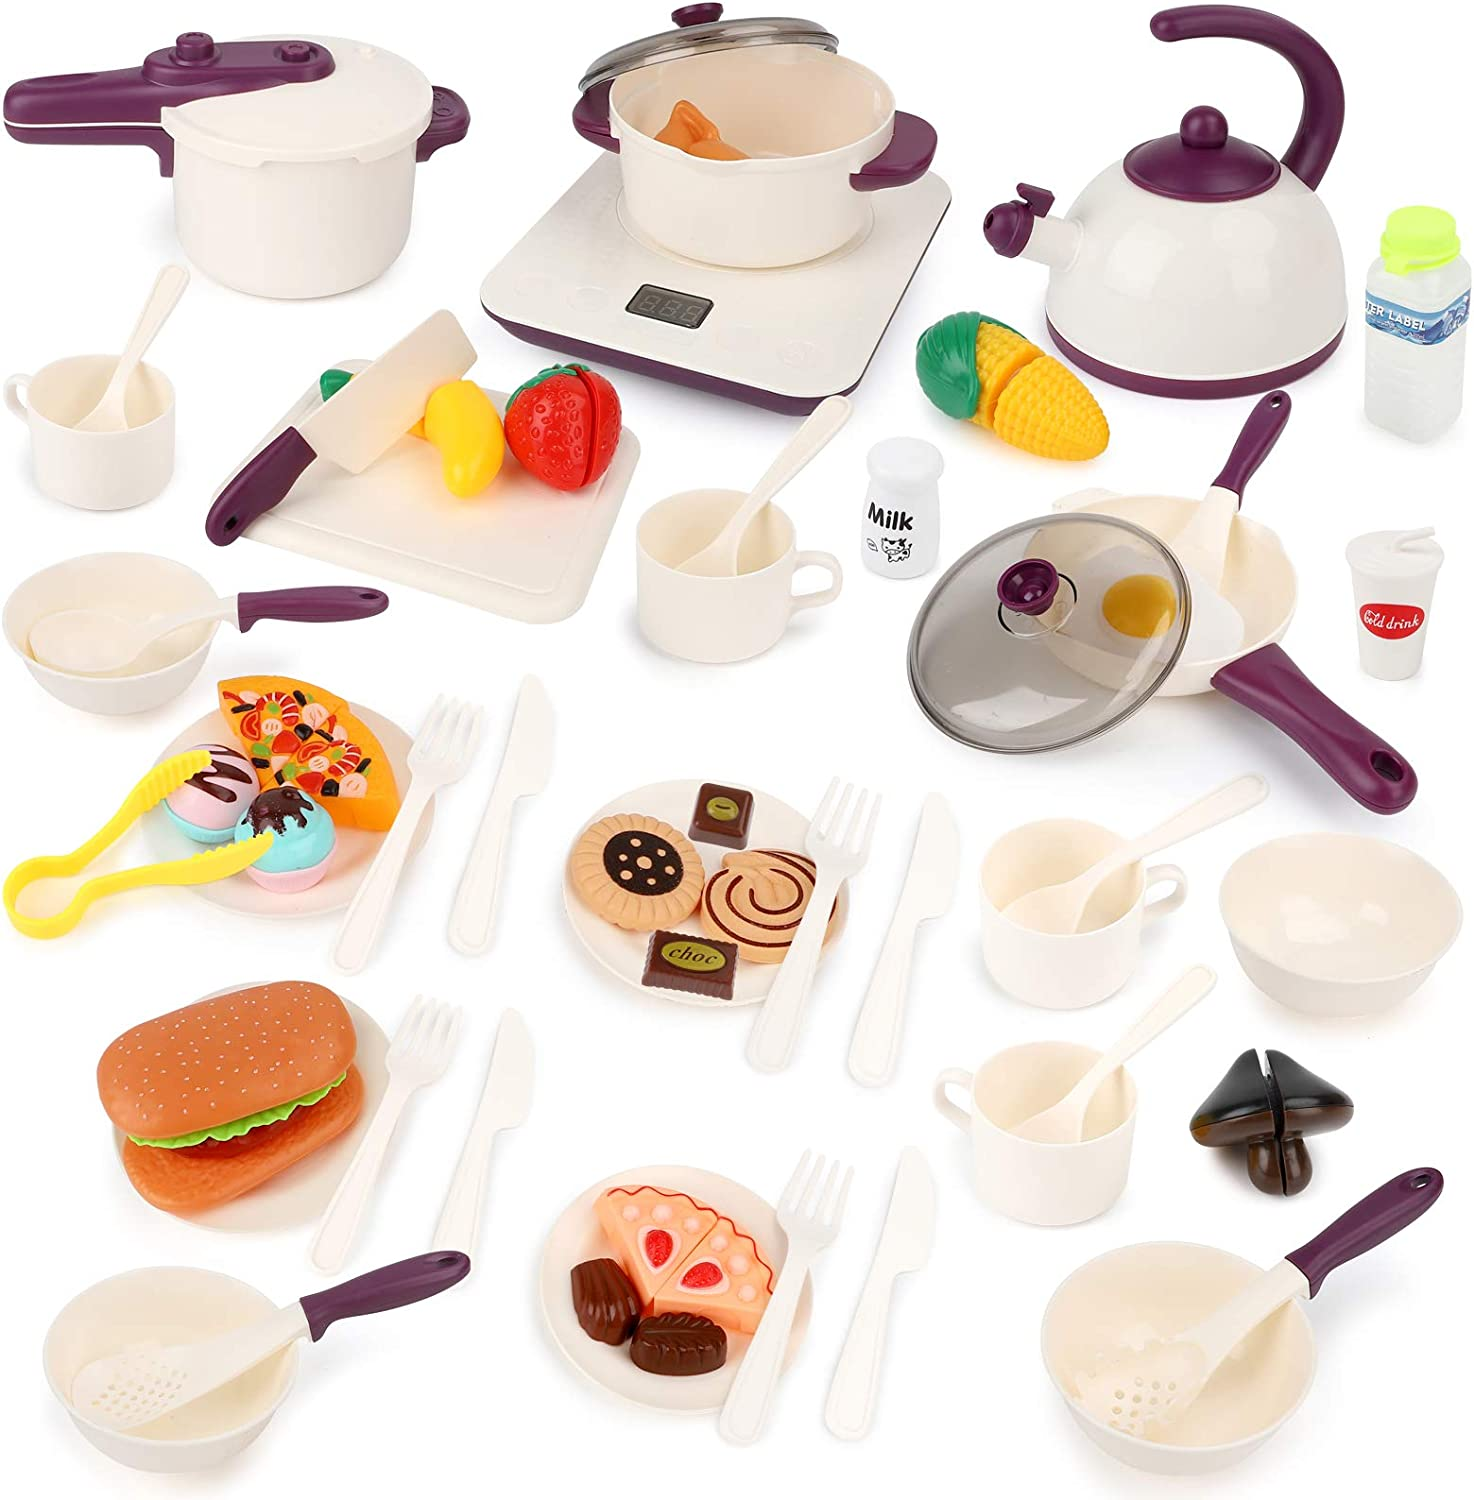 BeebeeRun Kids Kitchen Pretend Play Toys 61PCS Cooking Set for Toddlers Cookware Pots and Pans Playset, Cooking Utensils, Toy Cutlery, Cutting Play Food